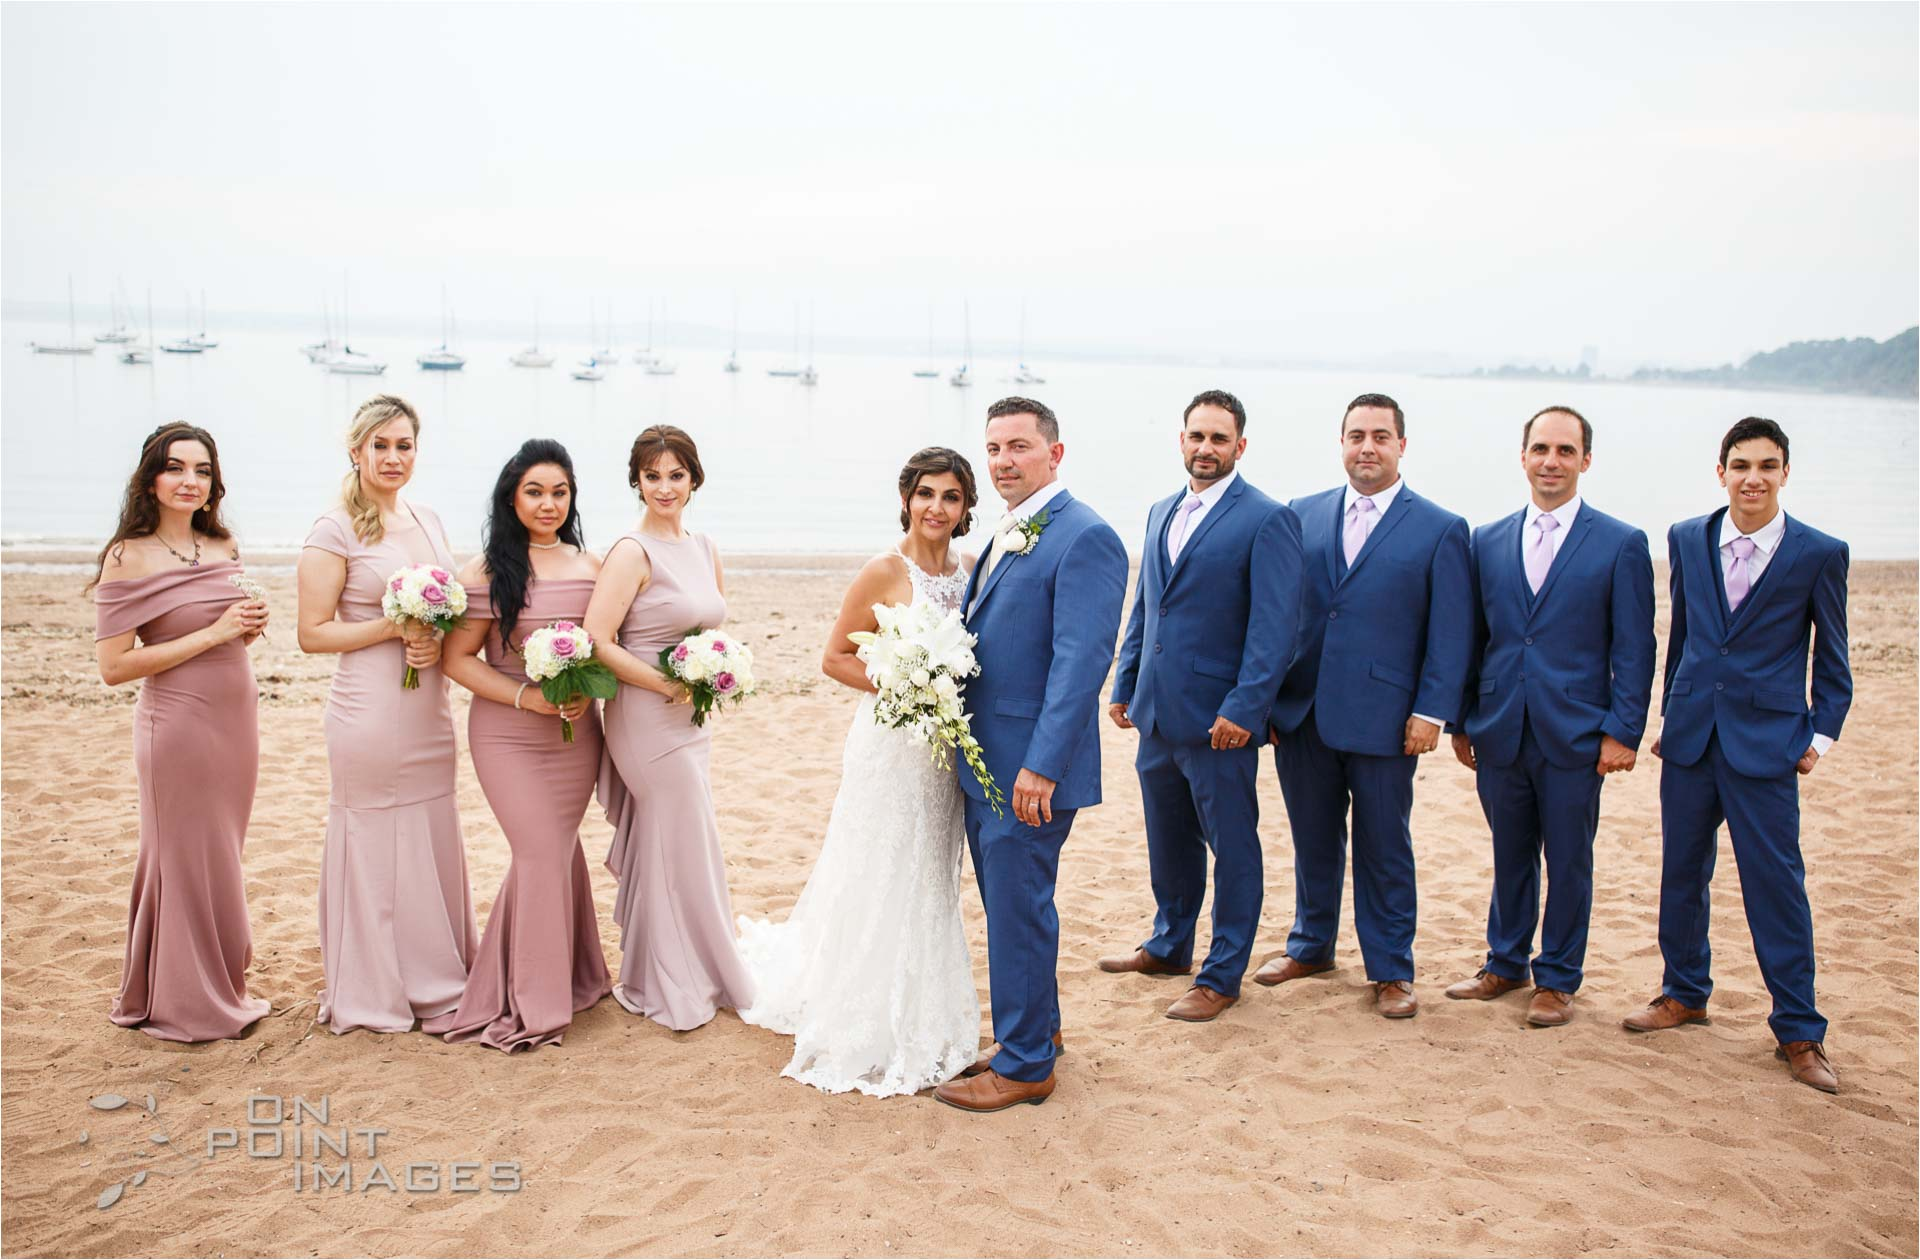 Anthonys-Ocean-View-Wedding-Photographs-22.jpg